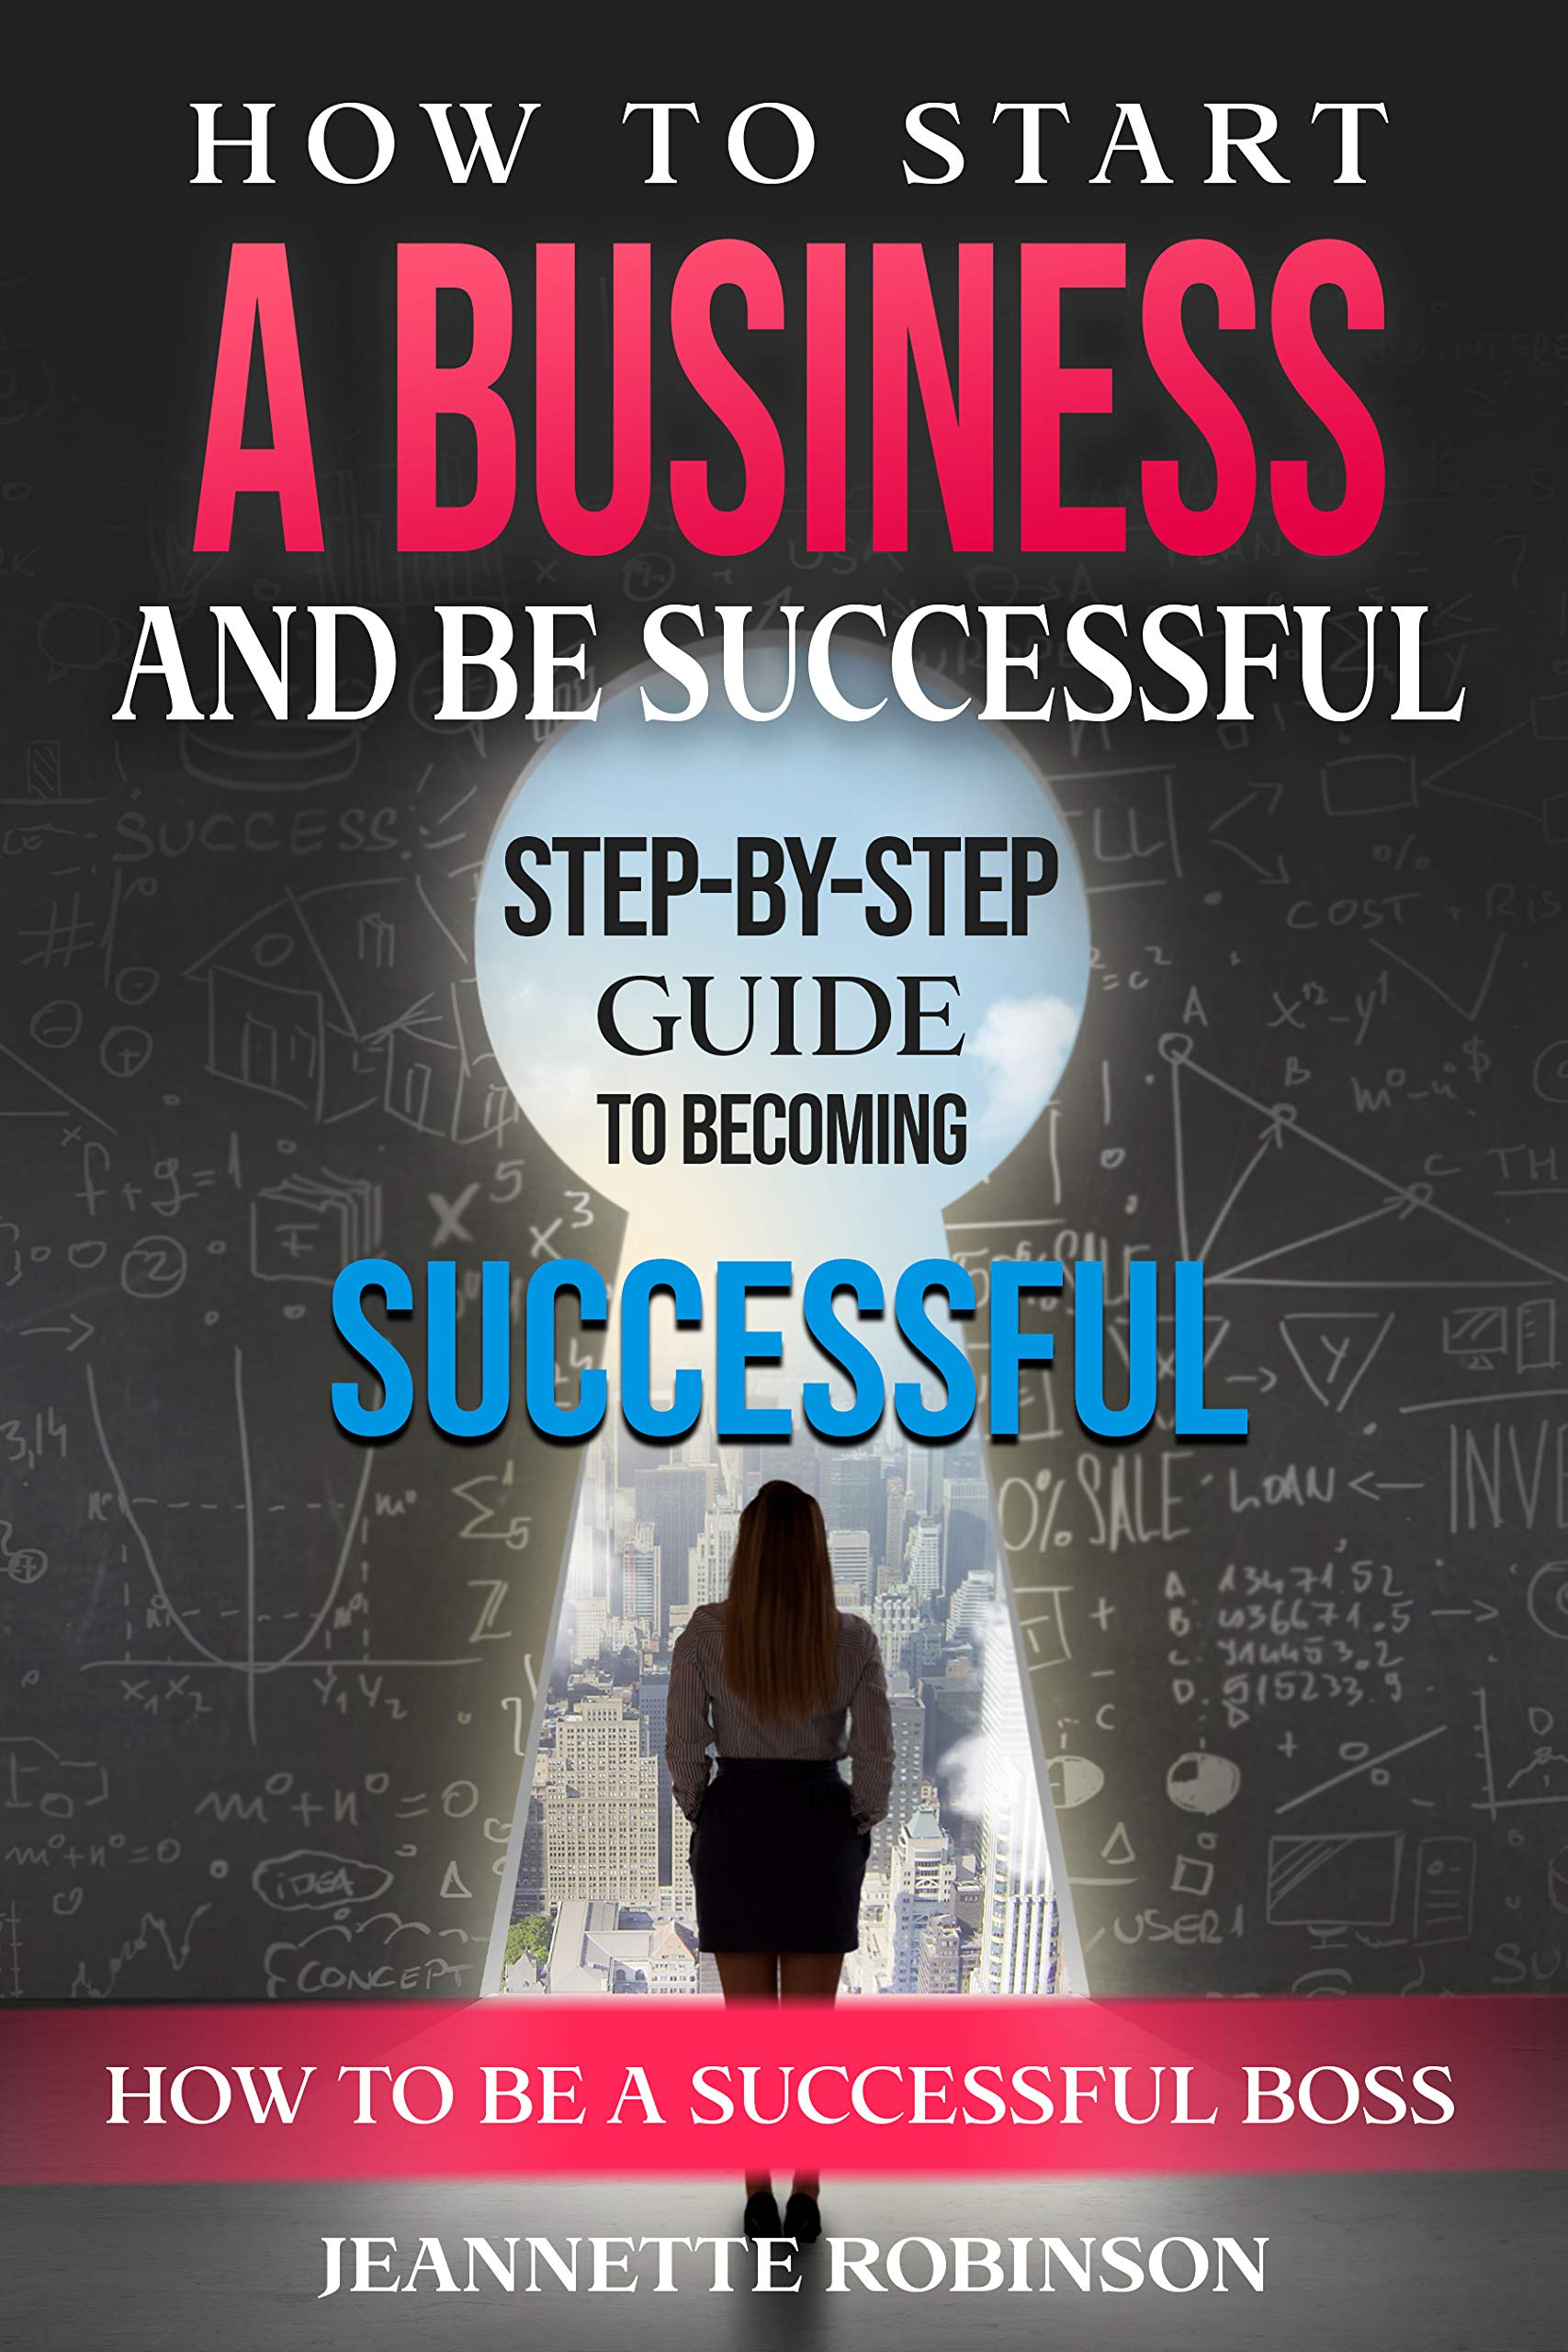 HOW TO START A BUSINESS AND BE SUCCESSFUL: HOW TO BE A SUCCESSFUL BOSS